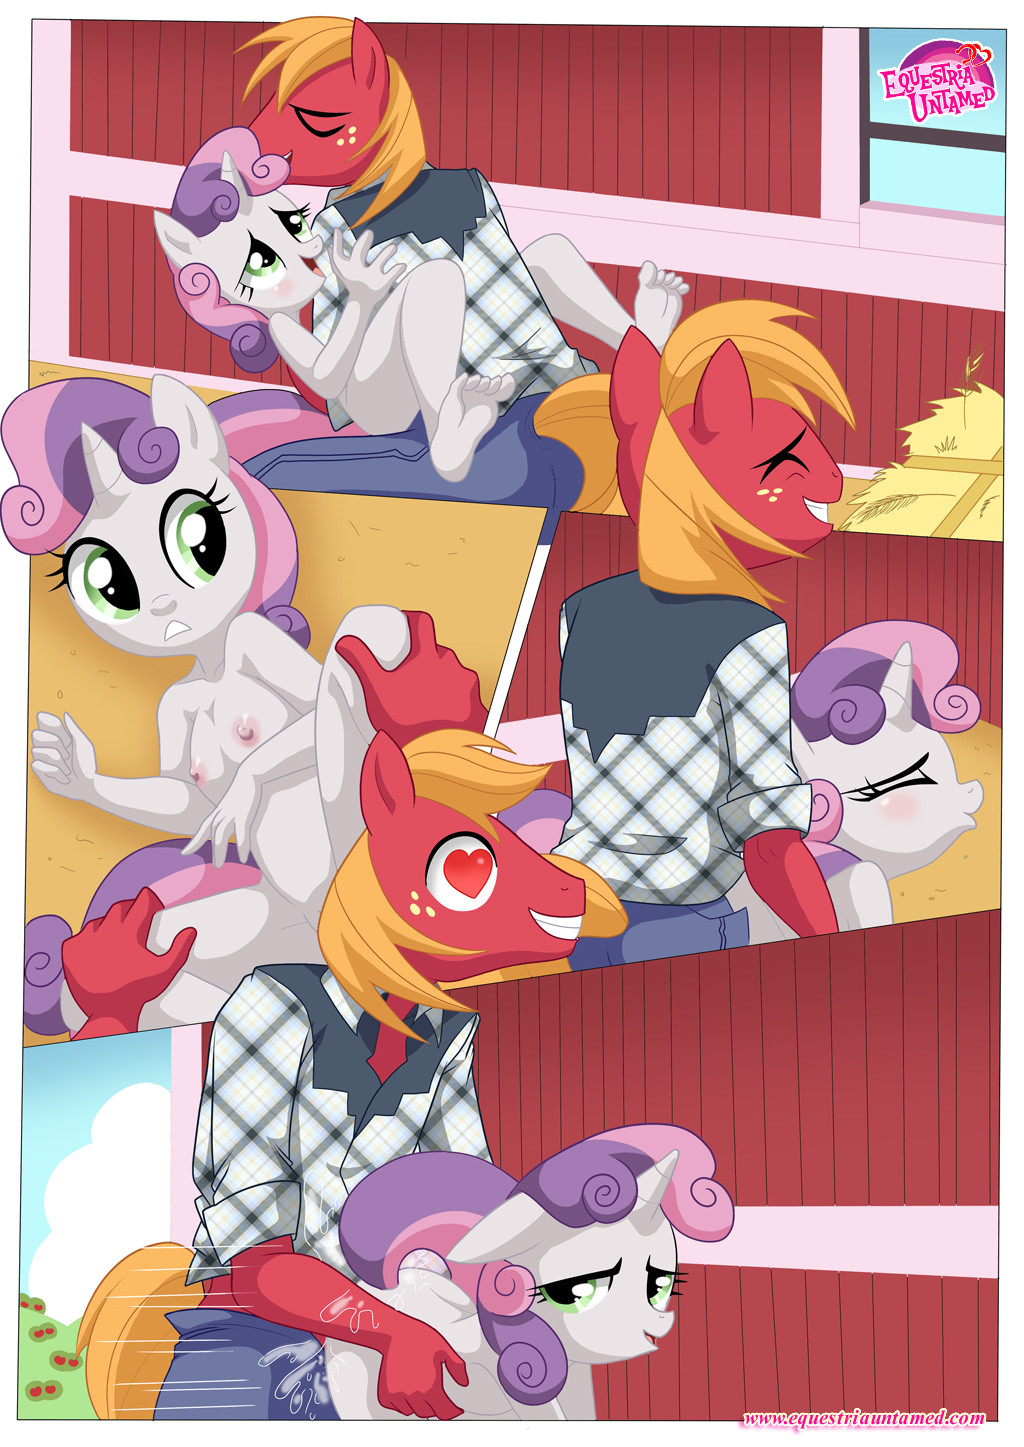 Mlp sweetie belle big boobs Xbooru 1boy 1girl Age Difference Anthro Bbmbbf Be My Special Somepony Big Macintosh Big Macintosh Mlp Breasts Clothed Male Nude Female Comic Equestria Girls Equestria Untamed Female Female Anthro Fetish Friendship